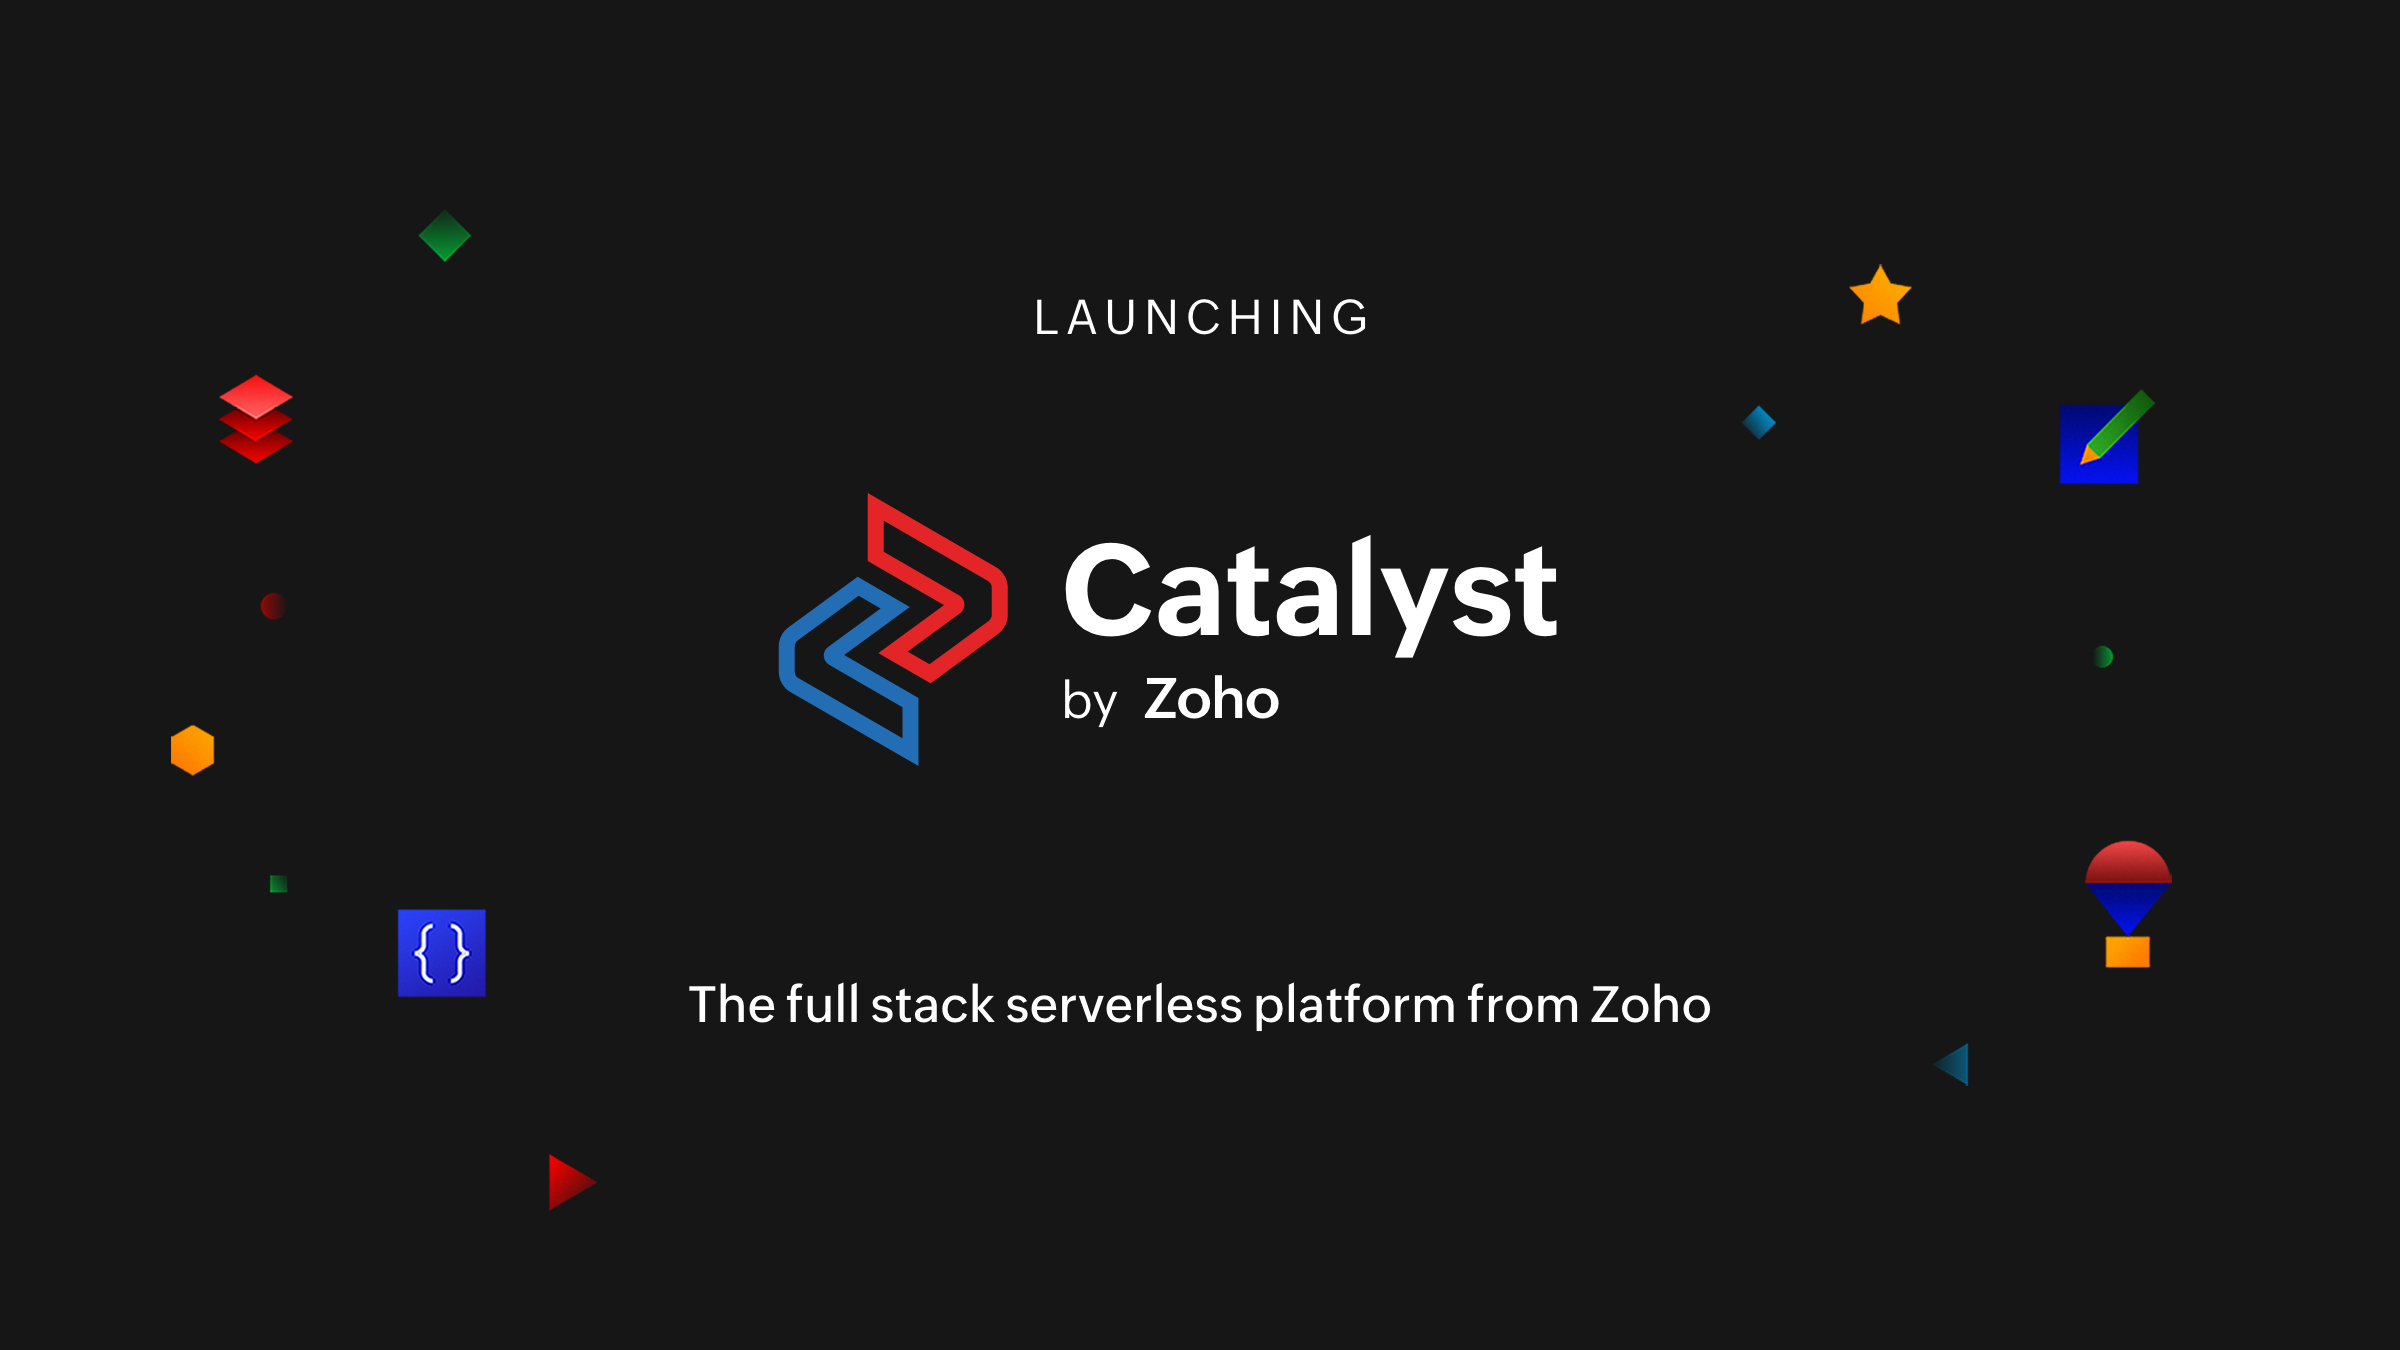 Catalyst launches today!